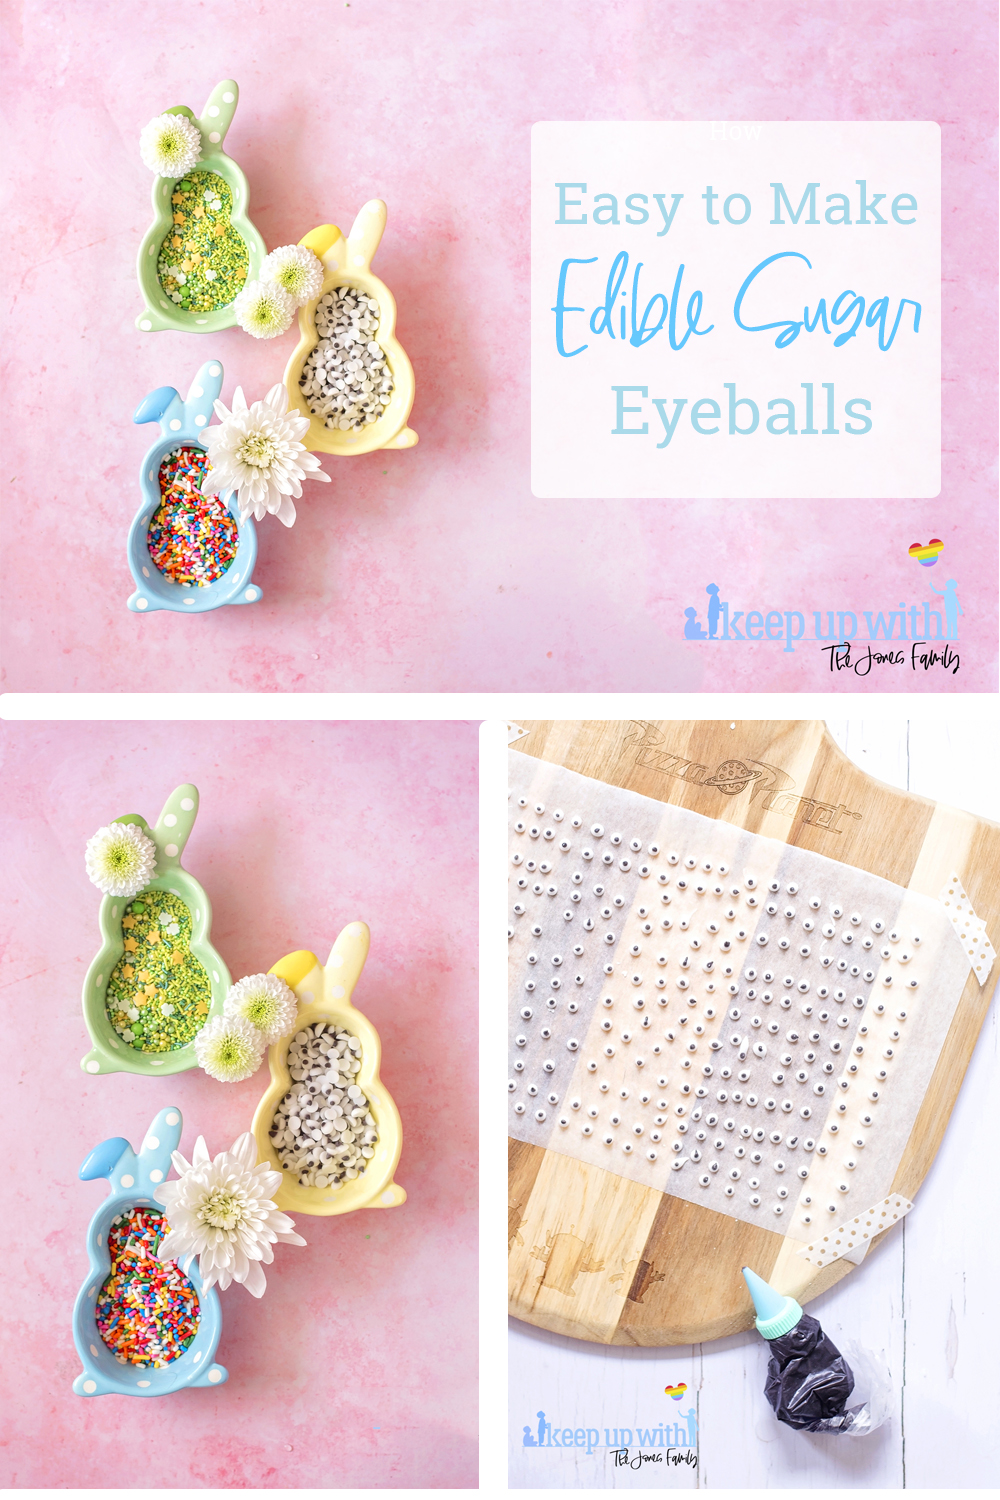 how to make easy edible eyeballs with sugar for fun food decorations